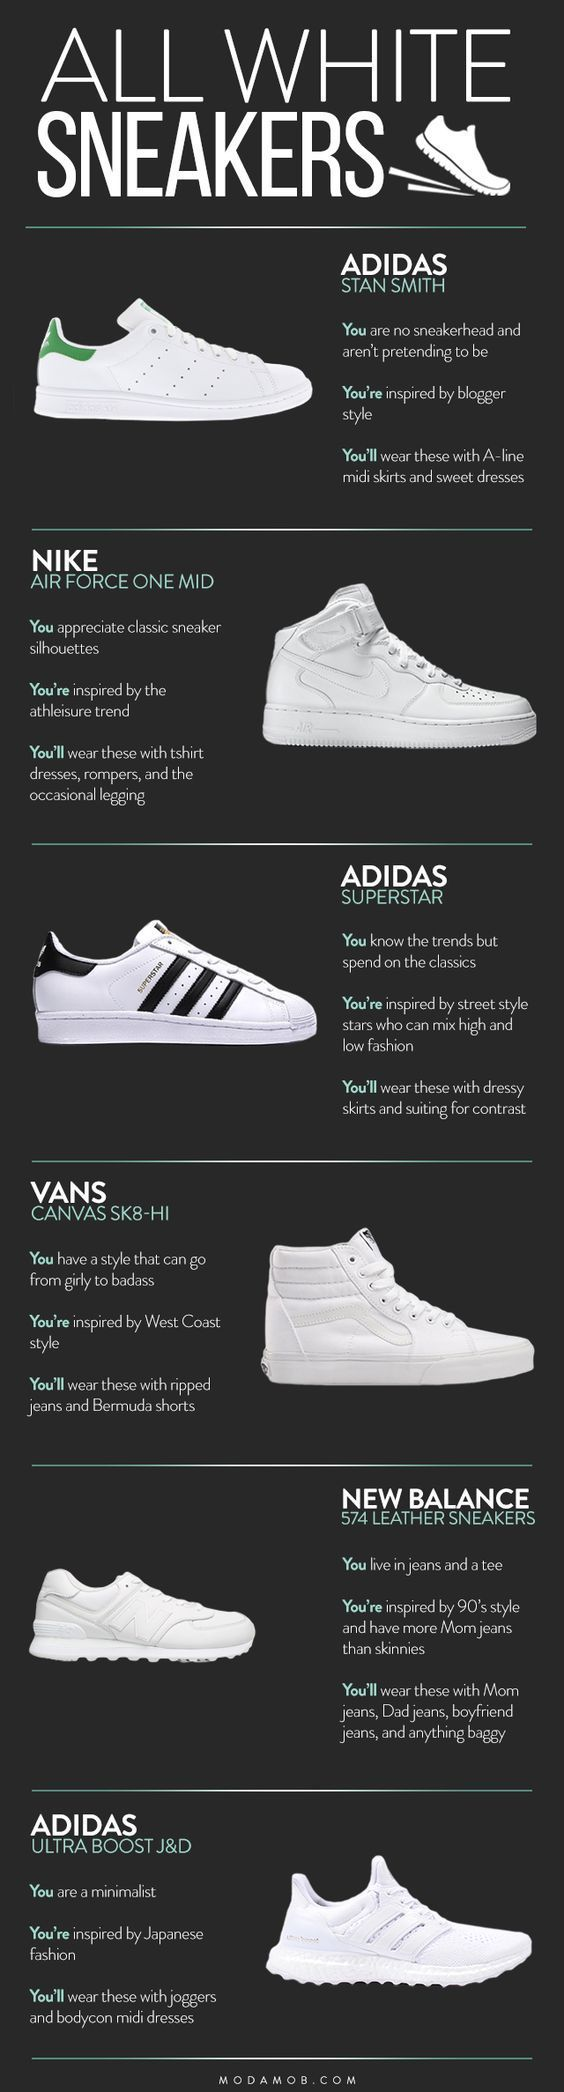 Which All White Sneaker Matches Your Personal Style | Adidas Stan Smith, Nike Airforce One, Adidas Superstar, Vans Canvas SK8, New Balance: